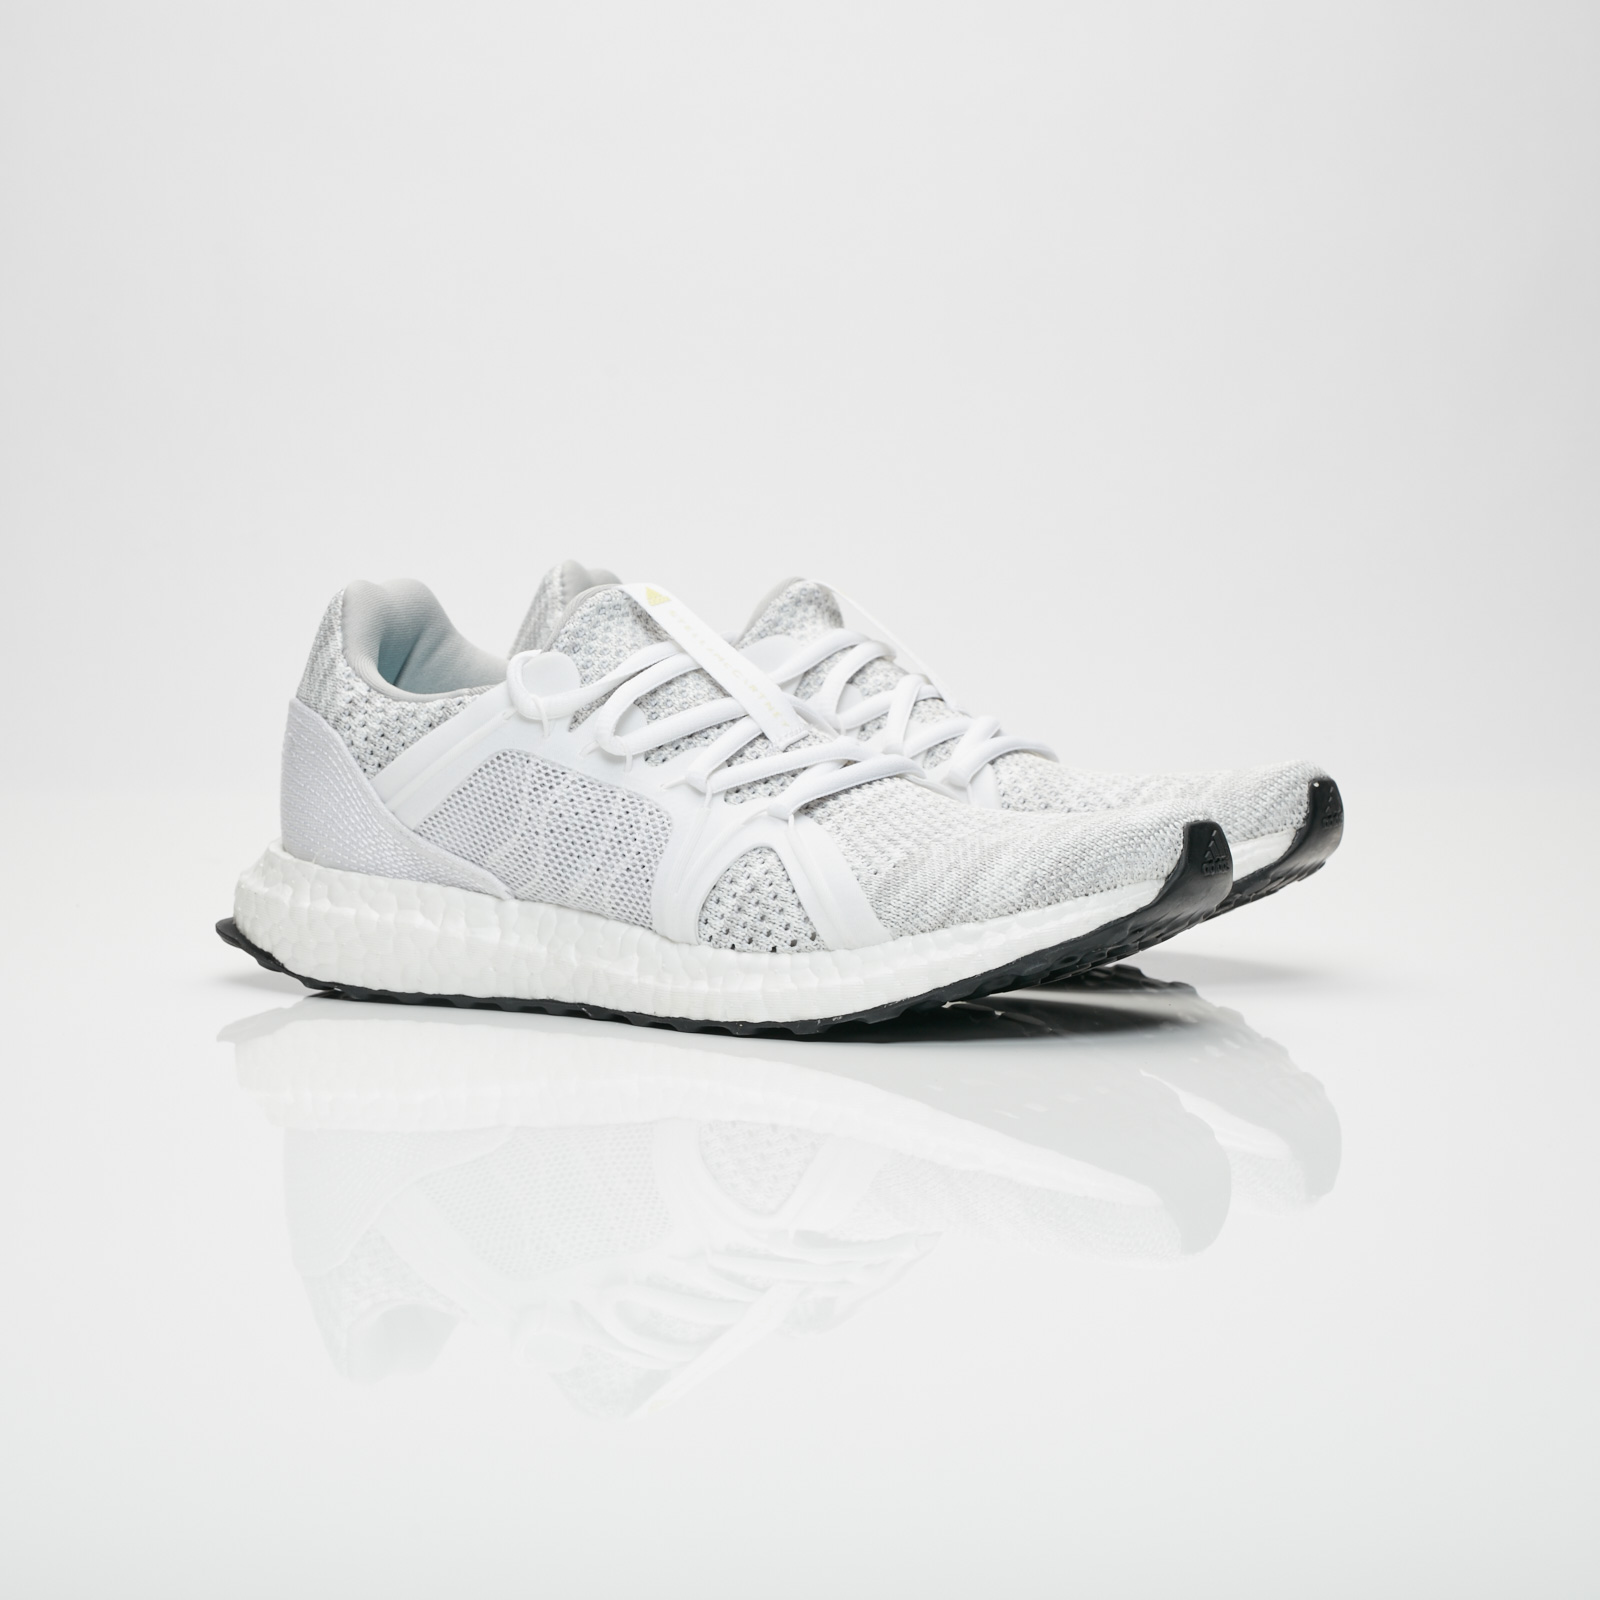 a46becf22c5ea adidas UltraBOOST Parley - Db1958 - Sneakersnstuff